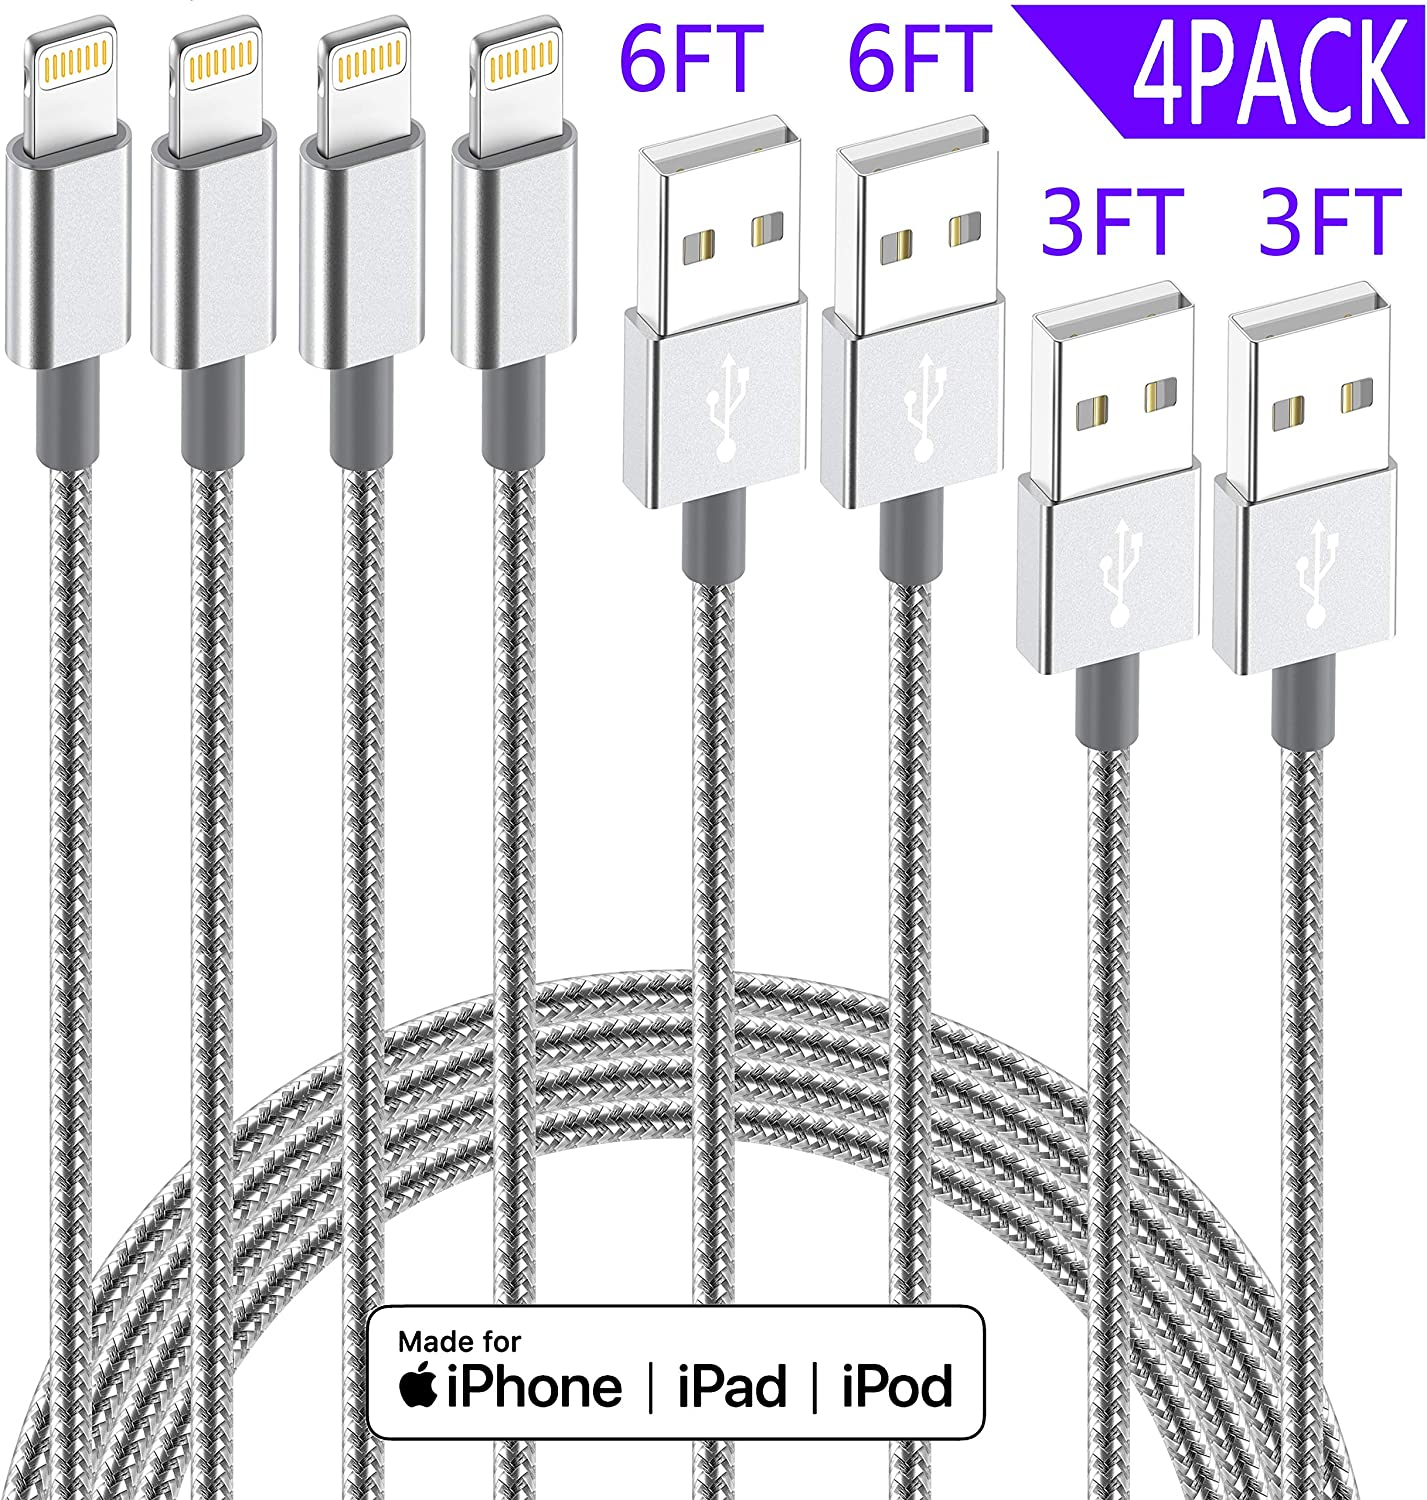 Free Amazon Promo Code 2020 for iPhone Charger Lightning Cable